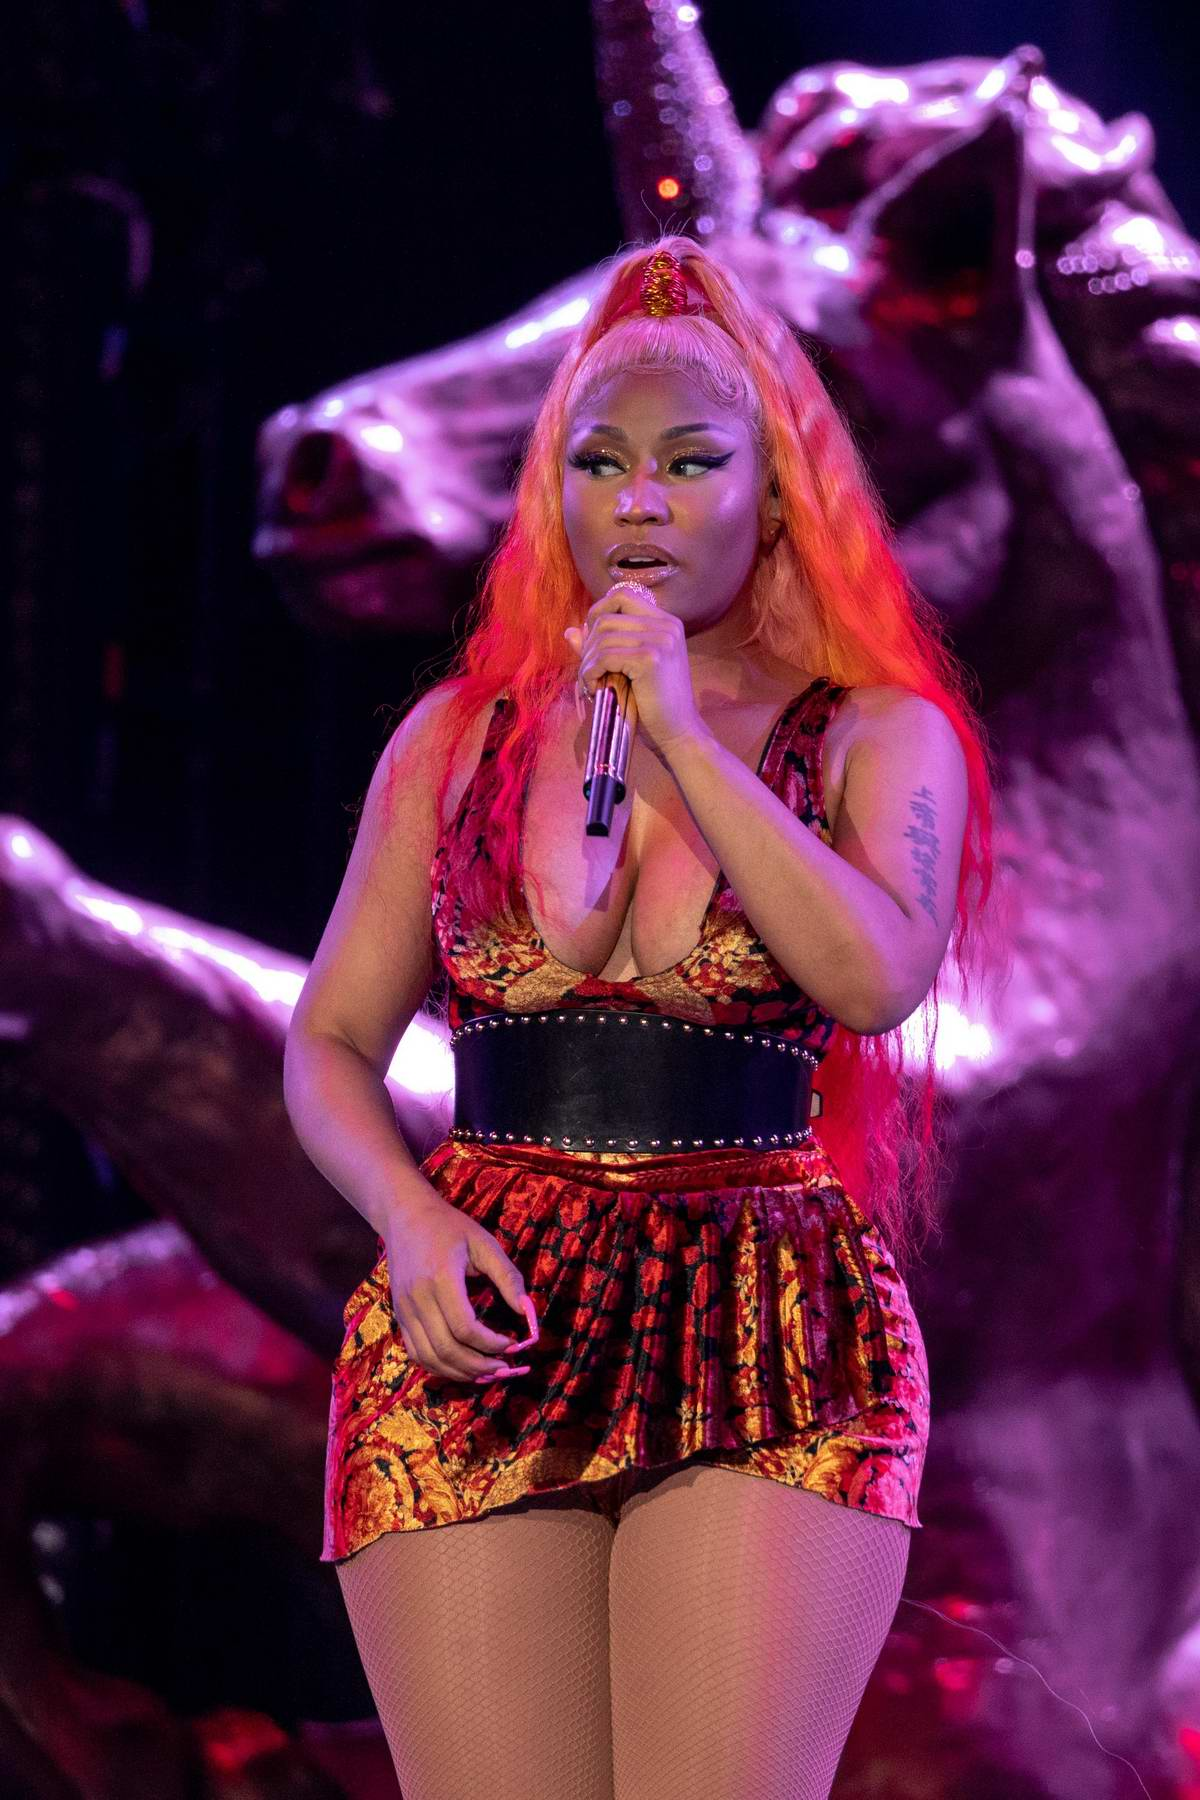 Nicki Minaj performs during Made in America Music Festival in Philadelphia, Pennsylvania